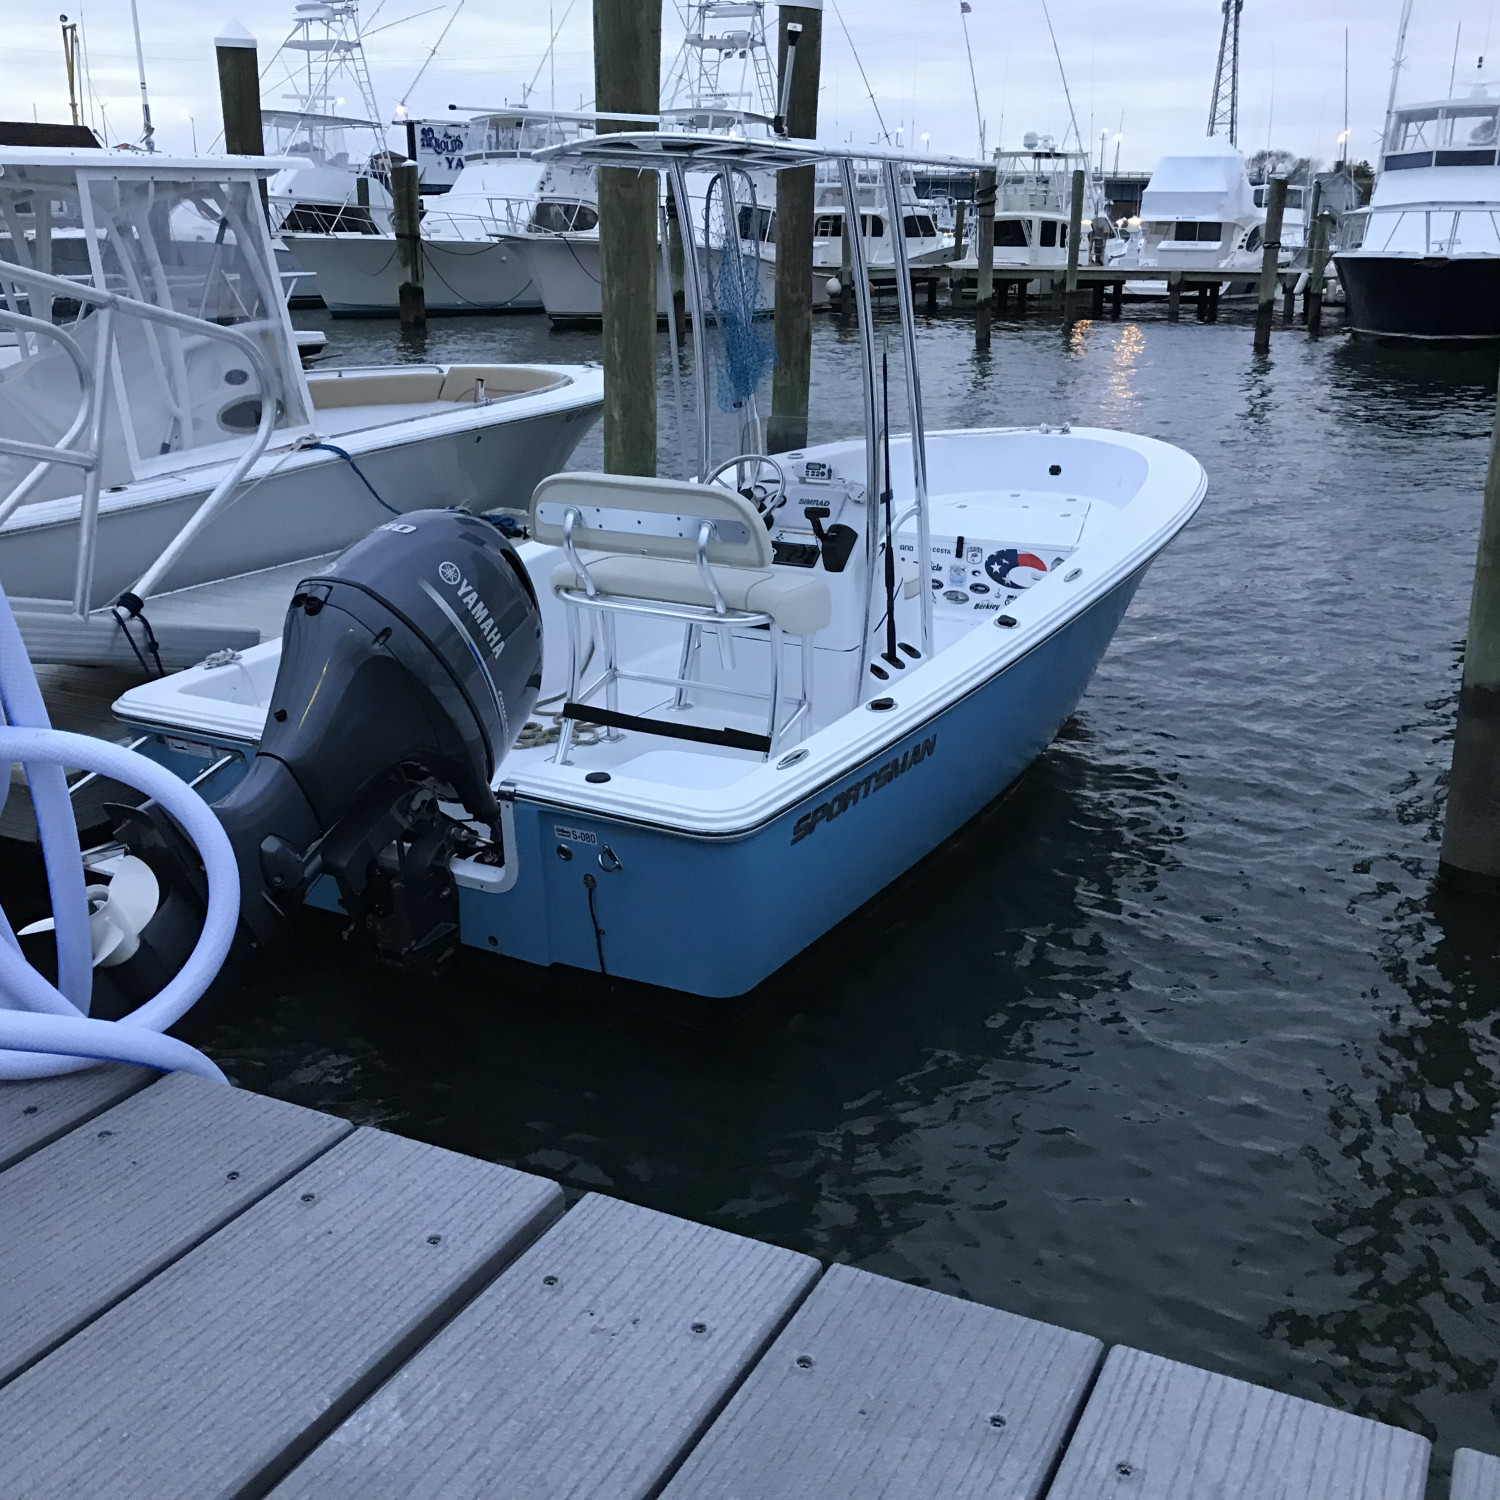 Title: Island reef 19 - On board their Sportsman Island Reef 19 Center Console - Location: Hoffmans marina. Participating in the Photo Contest #SportsmanDecember2017